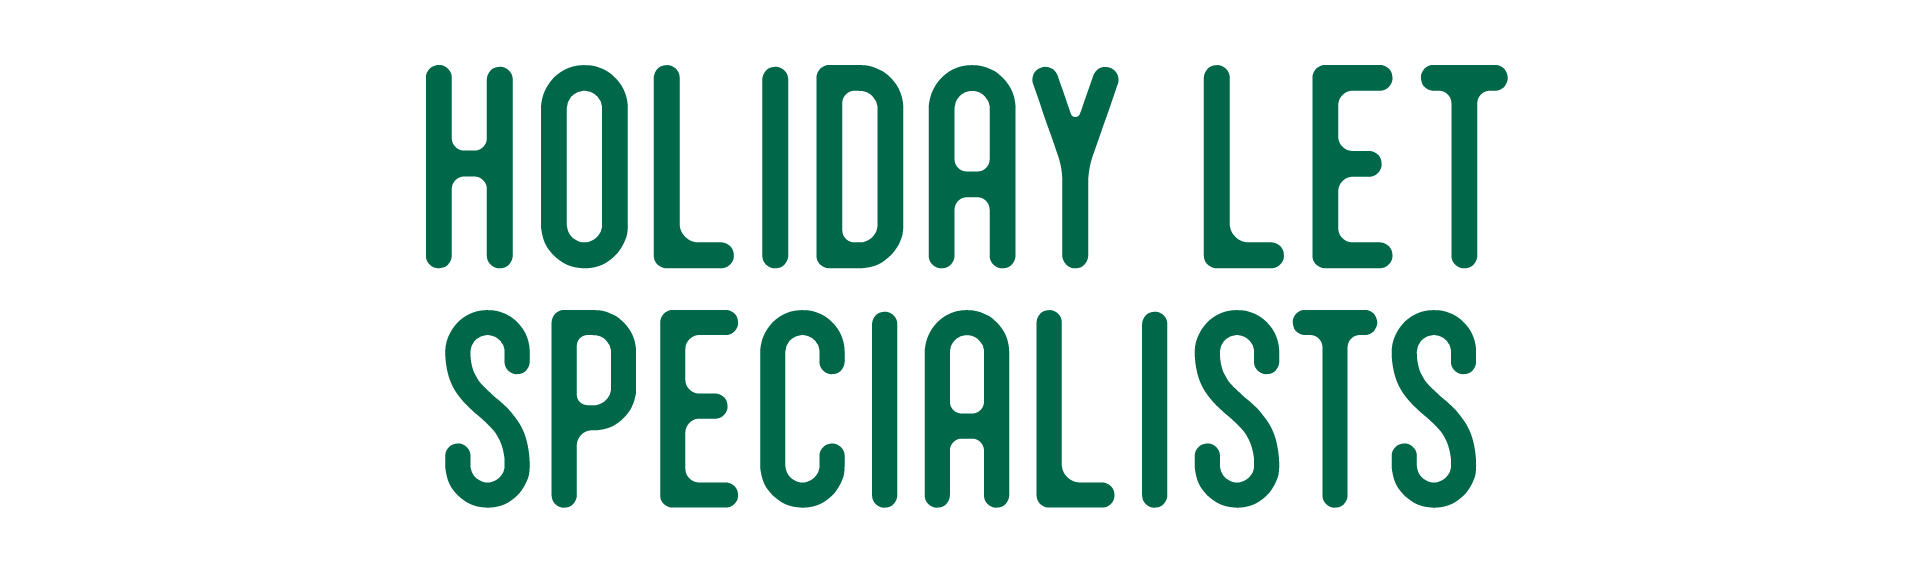 Holiday Let Specialists